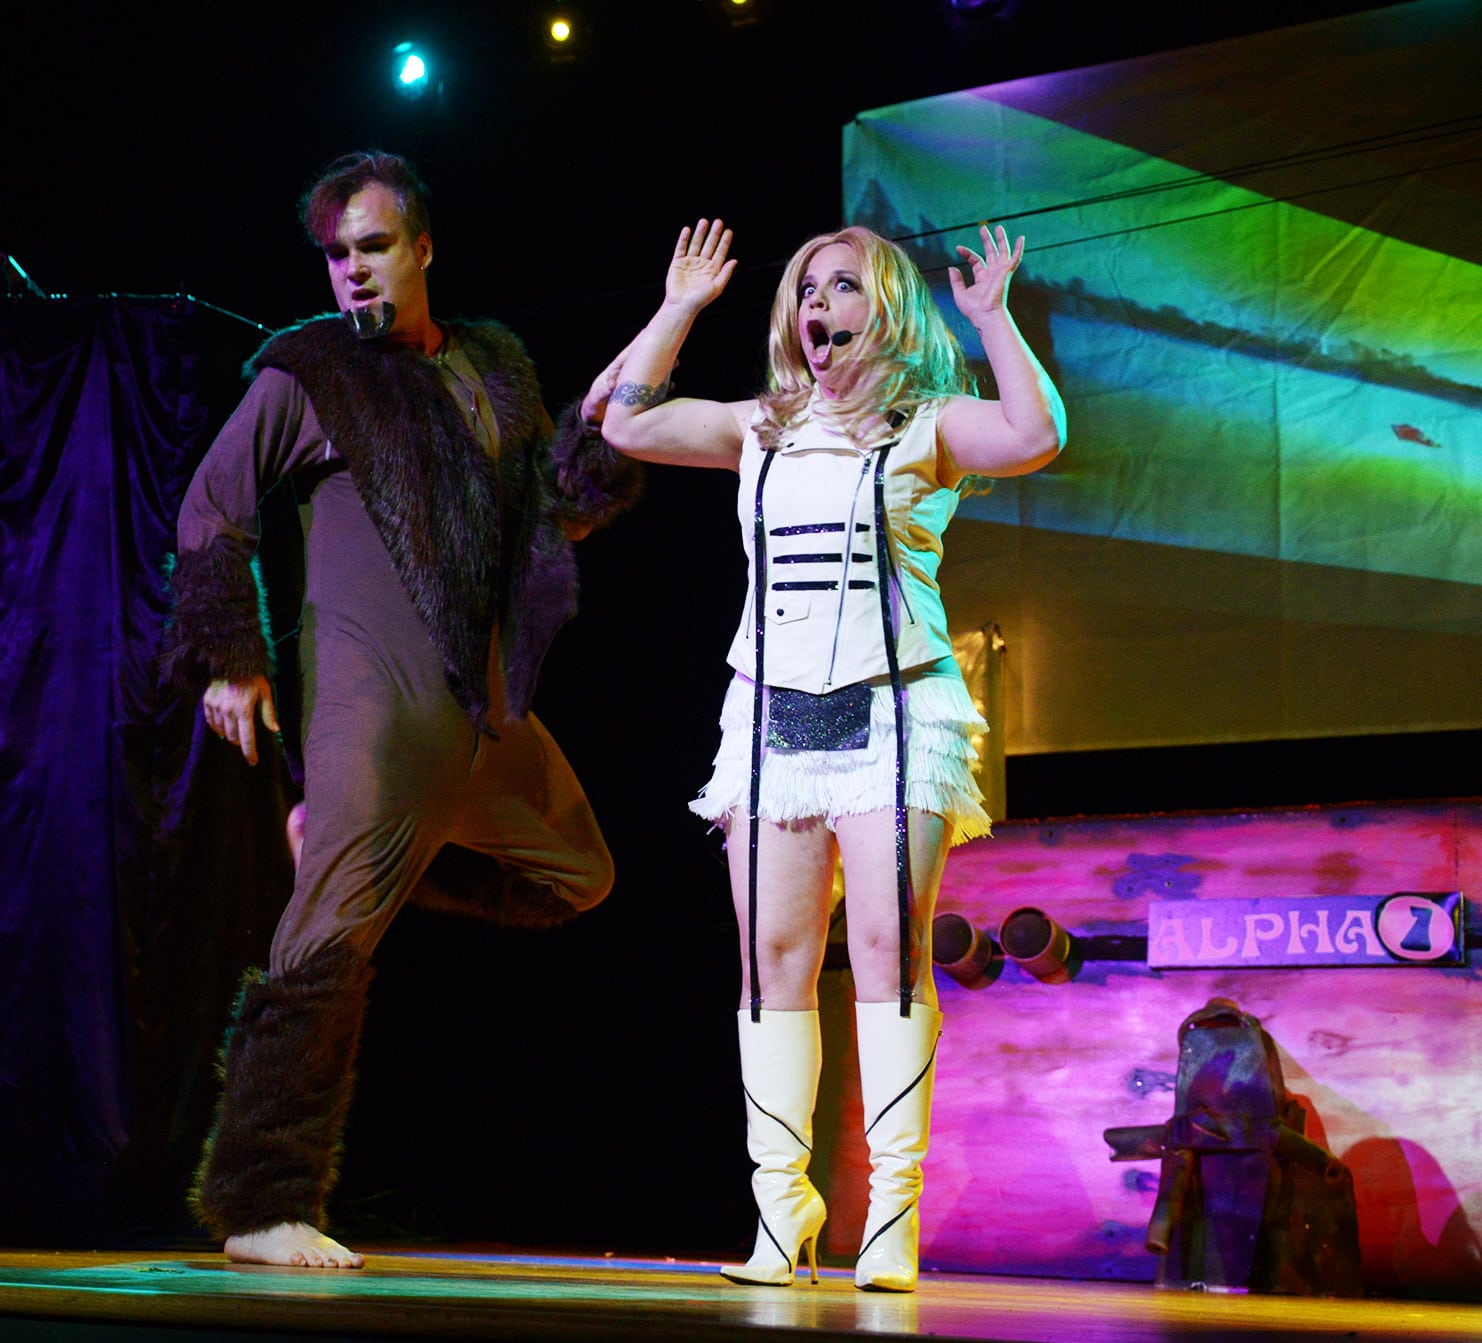 Pole Courter as Mark Hand and Sunny Sighed as Barbarella. Photo by Aaron Barlow.